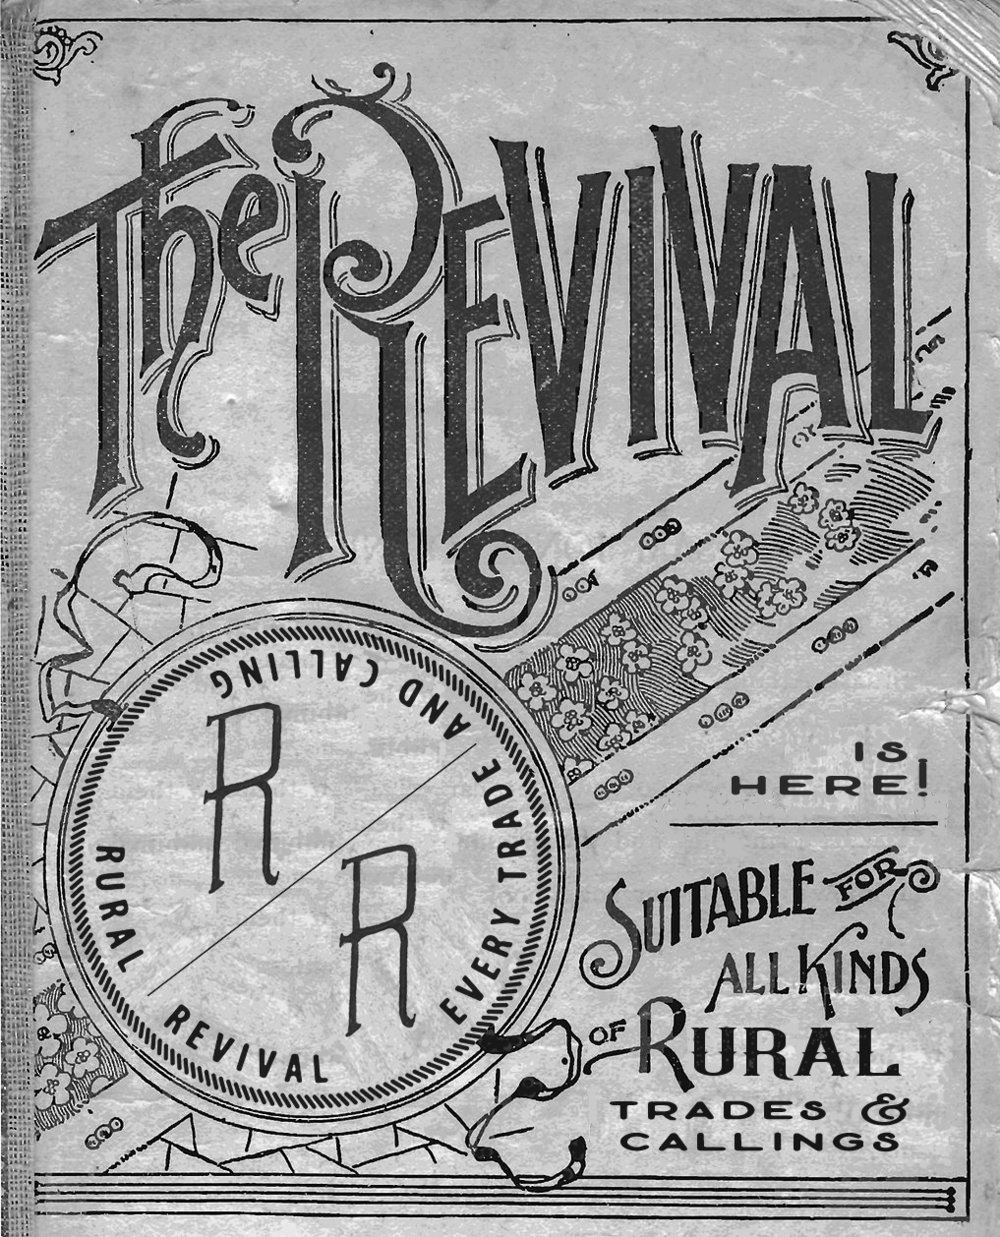 Rural Revival is Here Poster.jpg